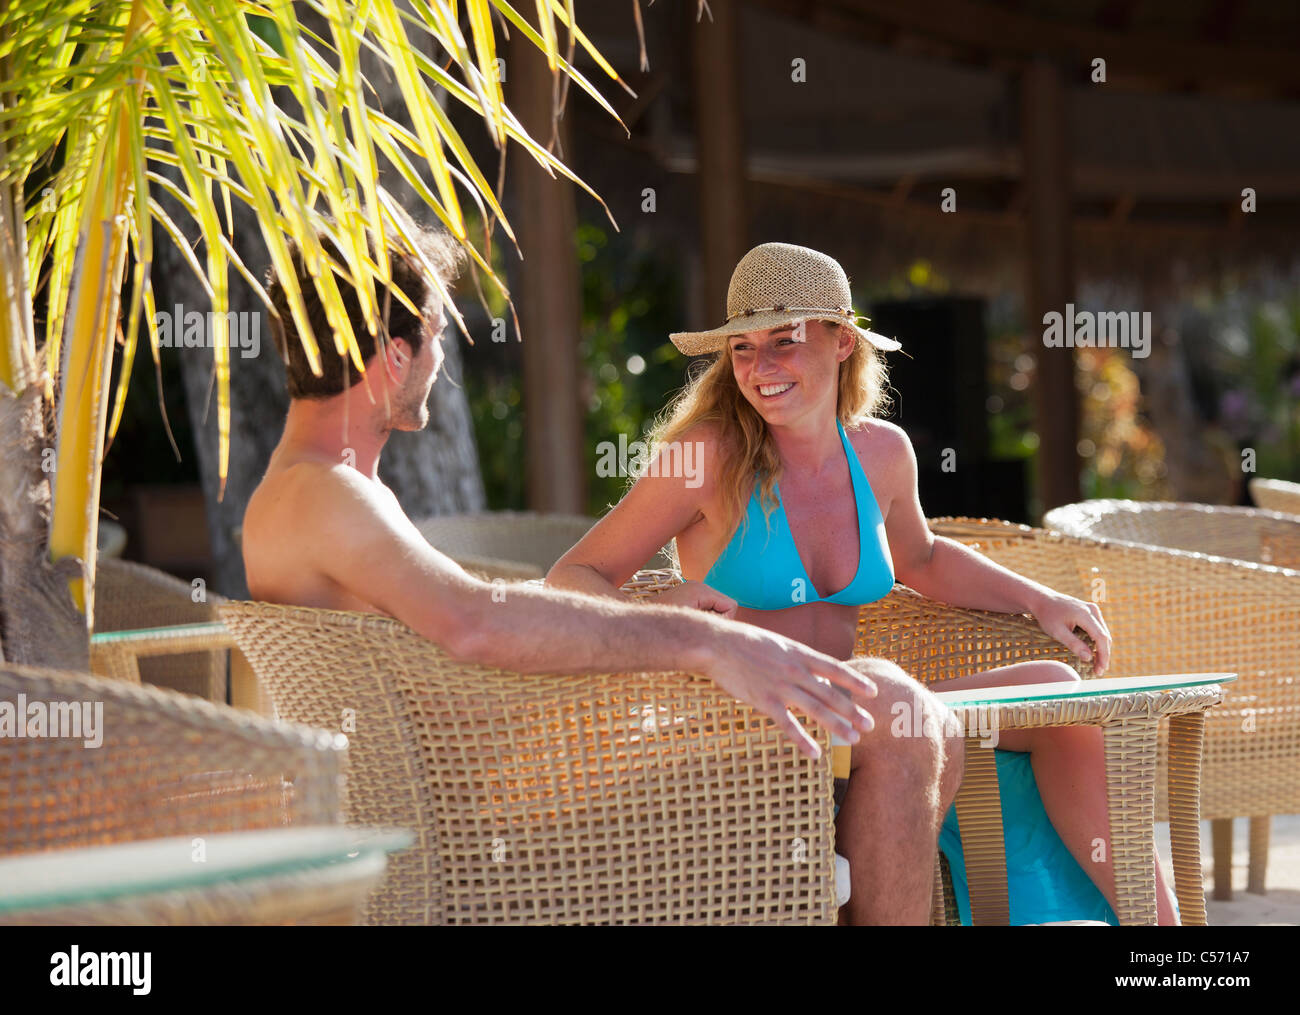 Couple sitting in wicker chairs outdoors - Stock Image